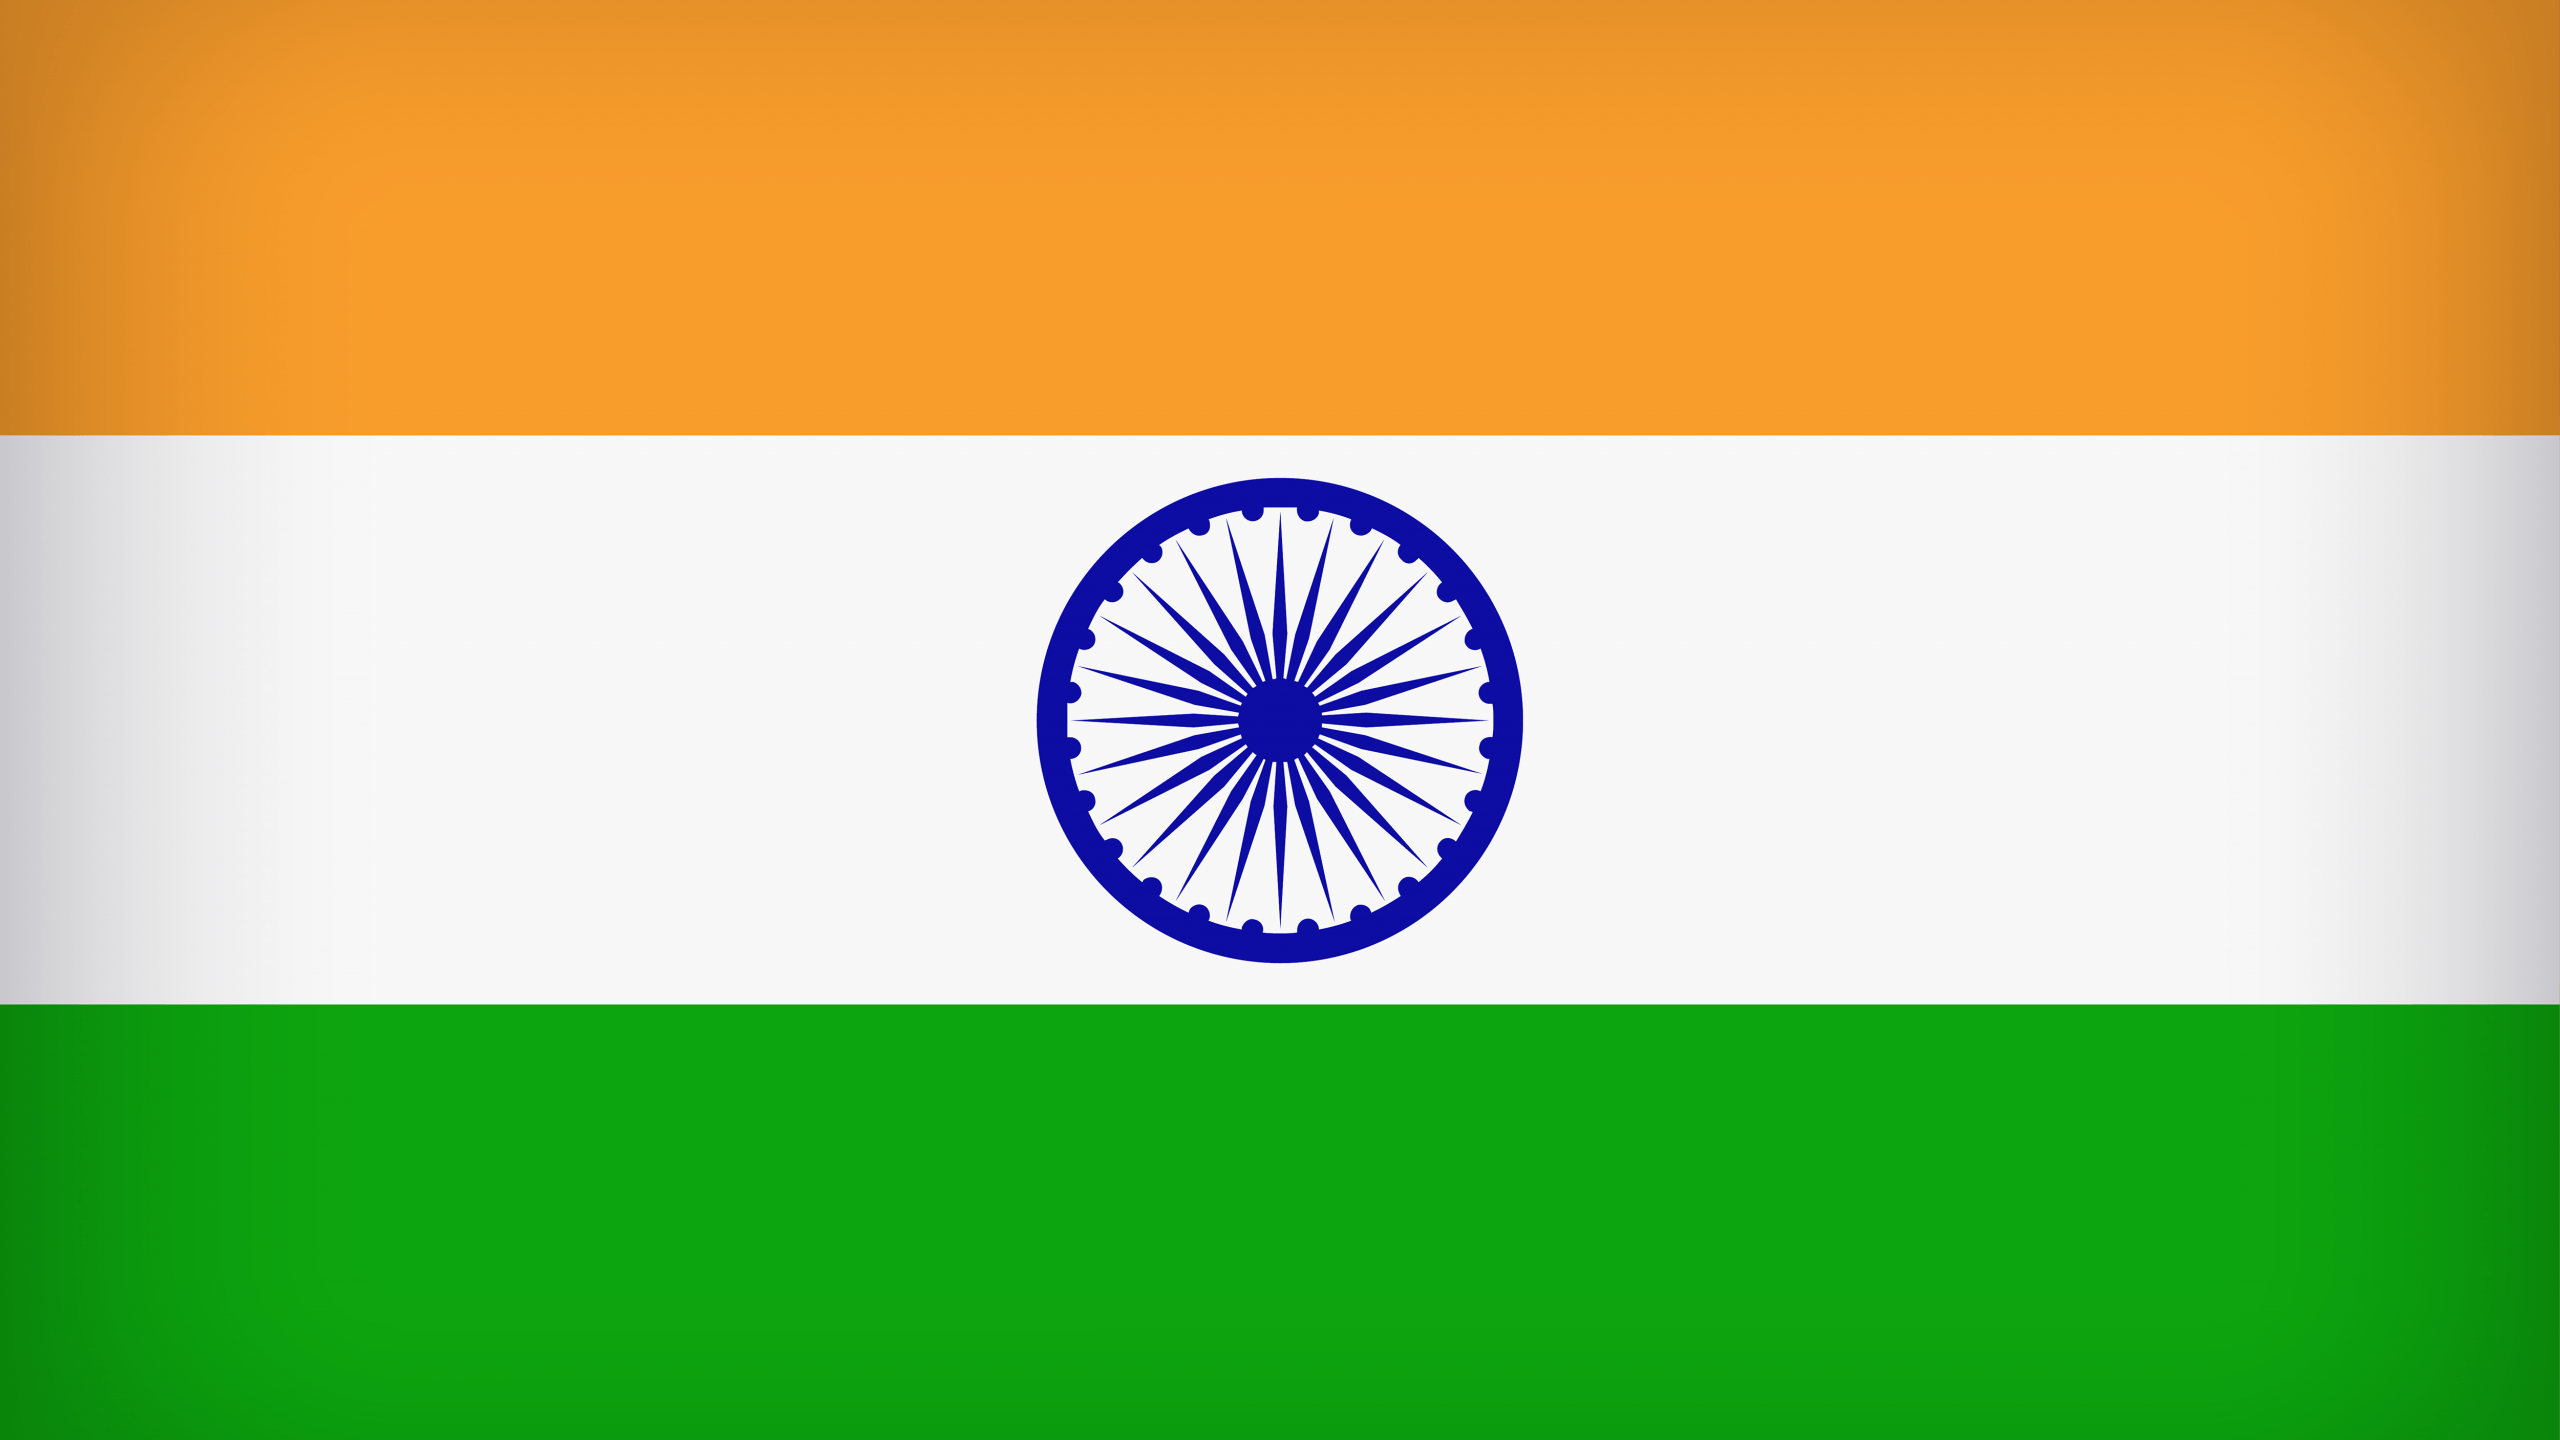 Indian Flag Wallpaper: Indian Flag 4K Wallpapers